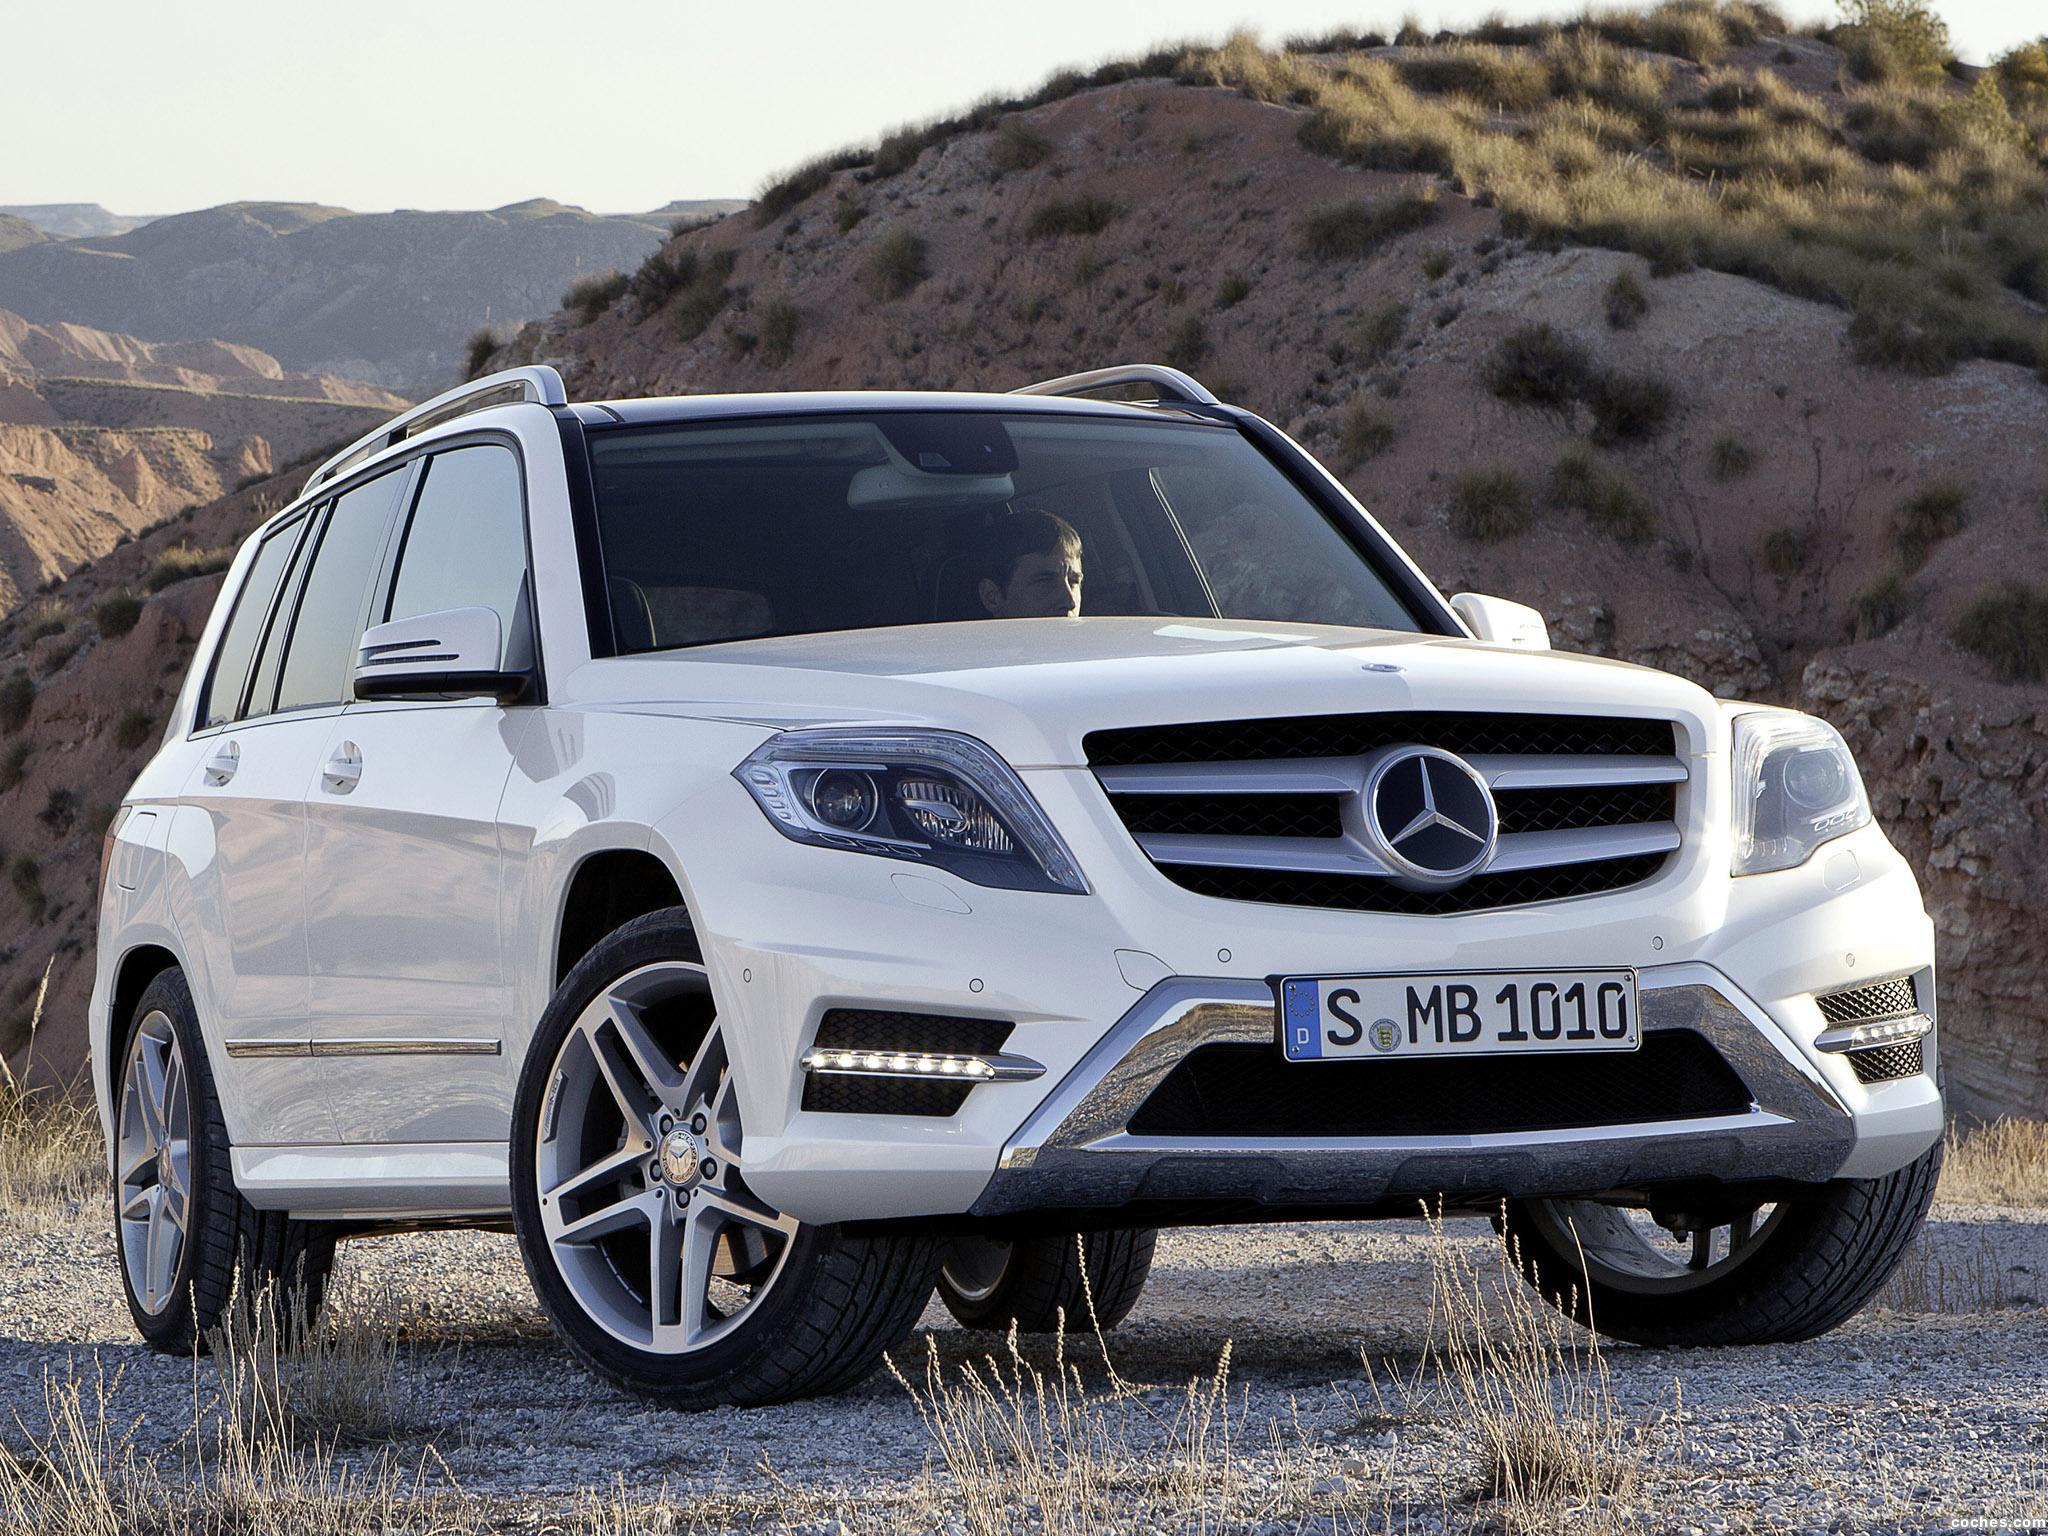 fotos de mercedes glk 350 4matic blueefficiency 2012. Black Bedroom Furniture Sets. Home Design Ideas